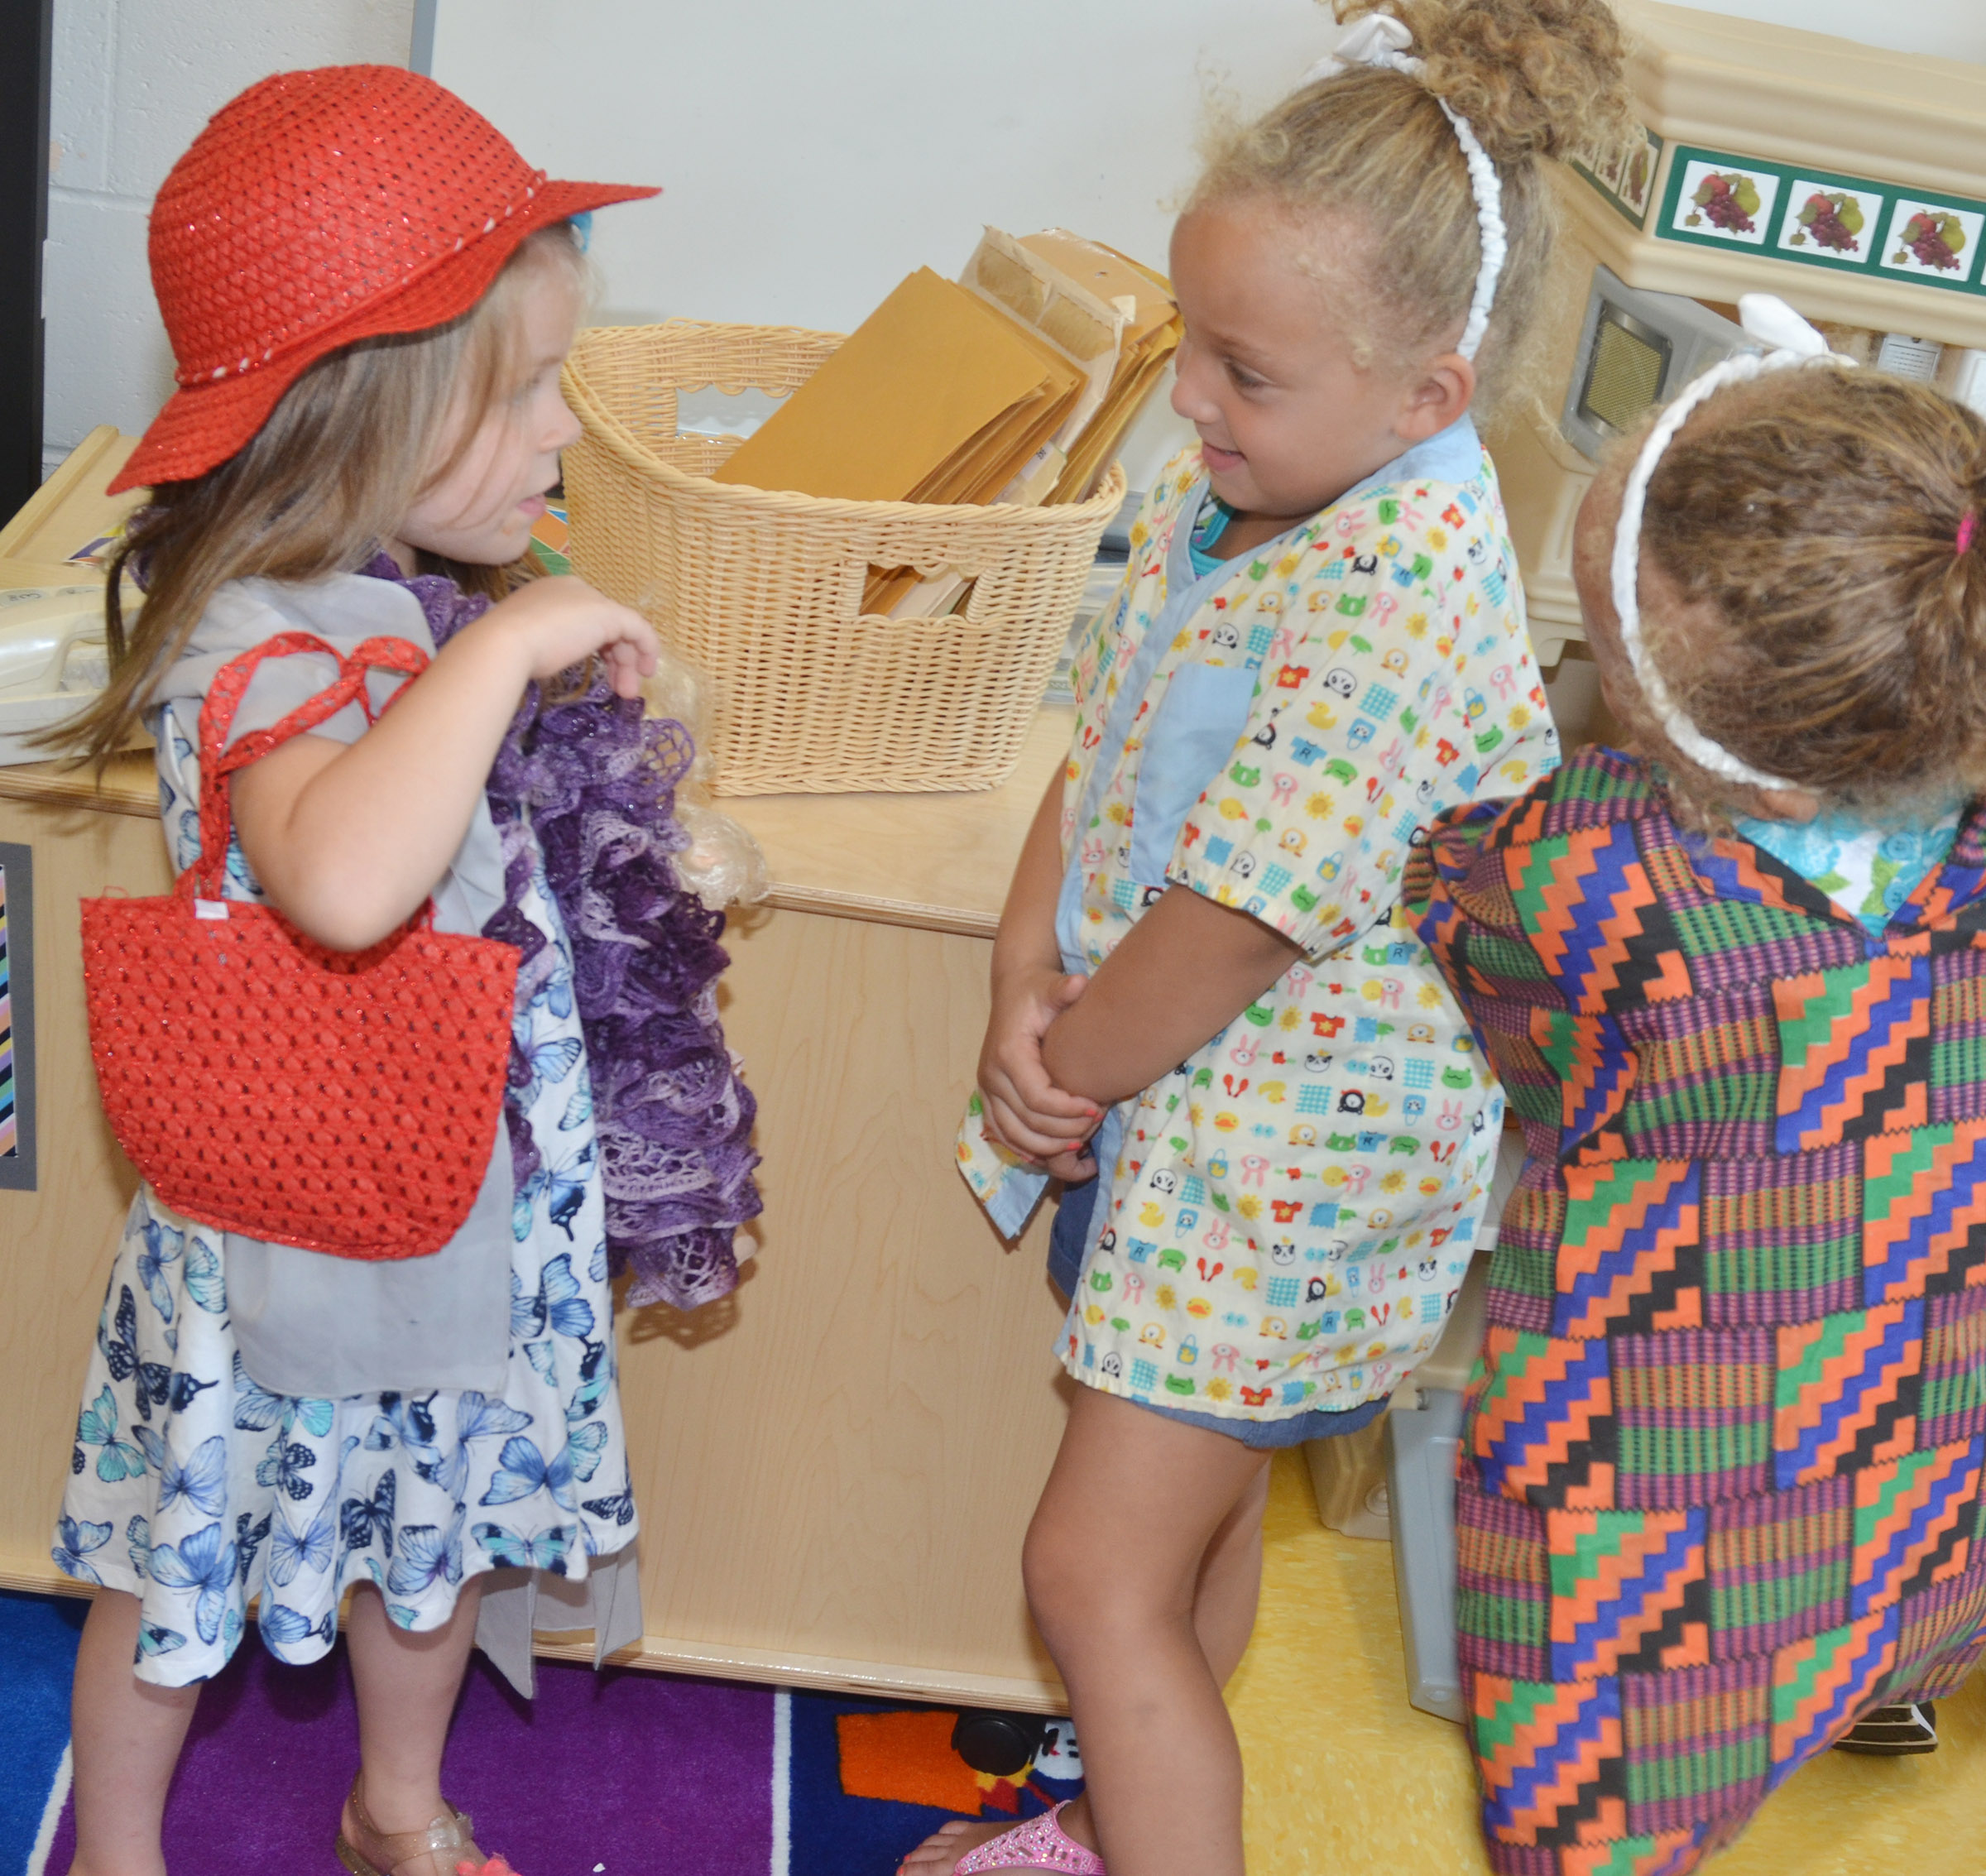 From left, CES preschool students Charlotte Coots, Jayla Barbee and Layla Barbee dress up.